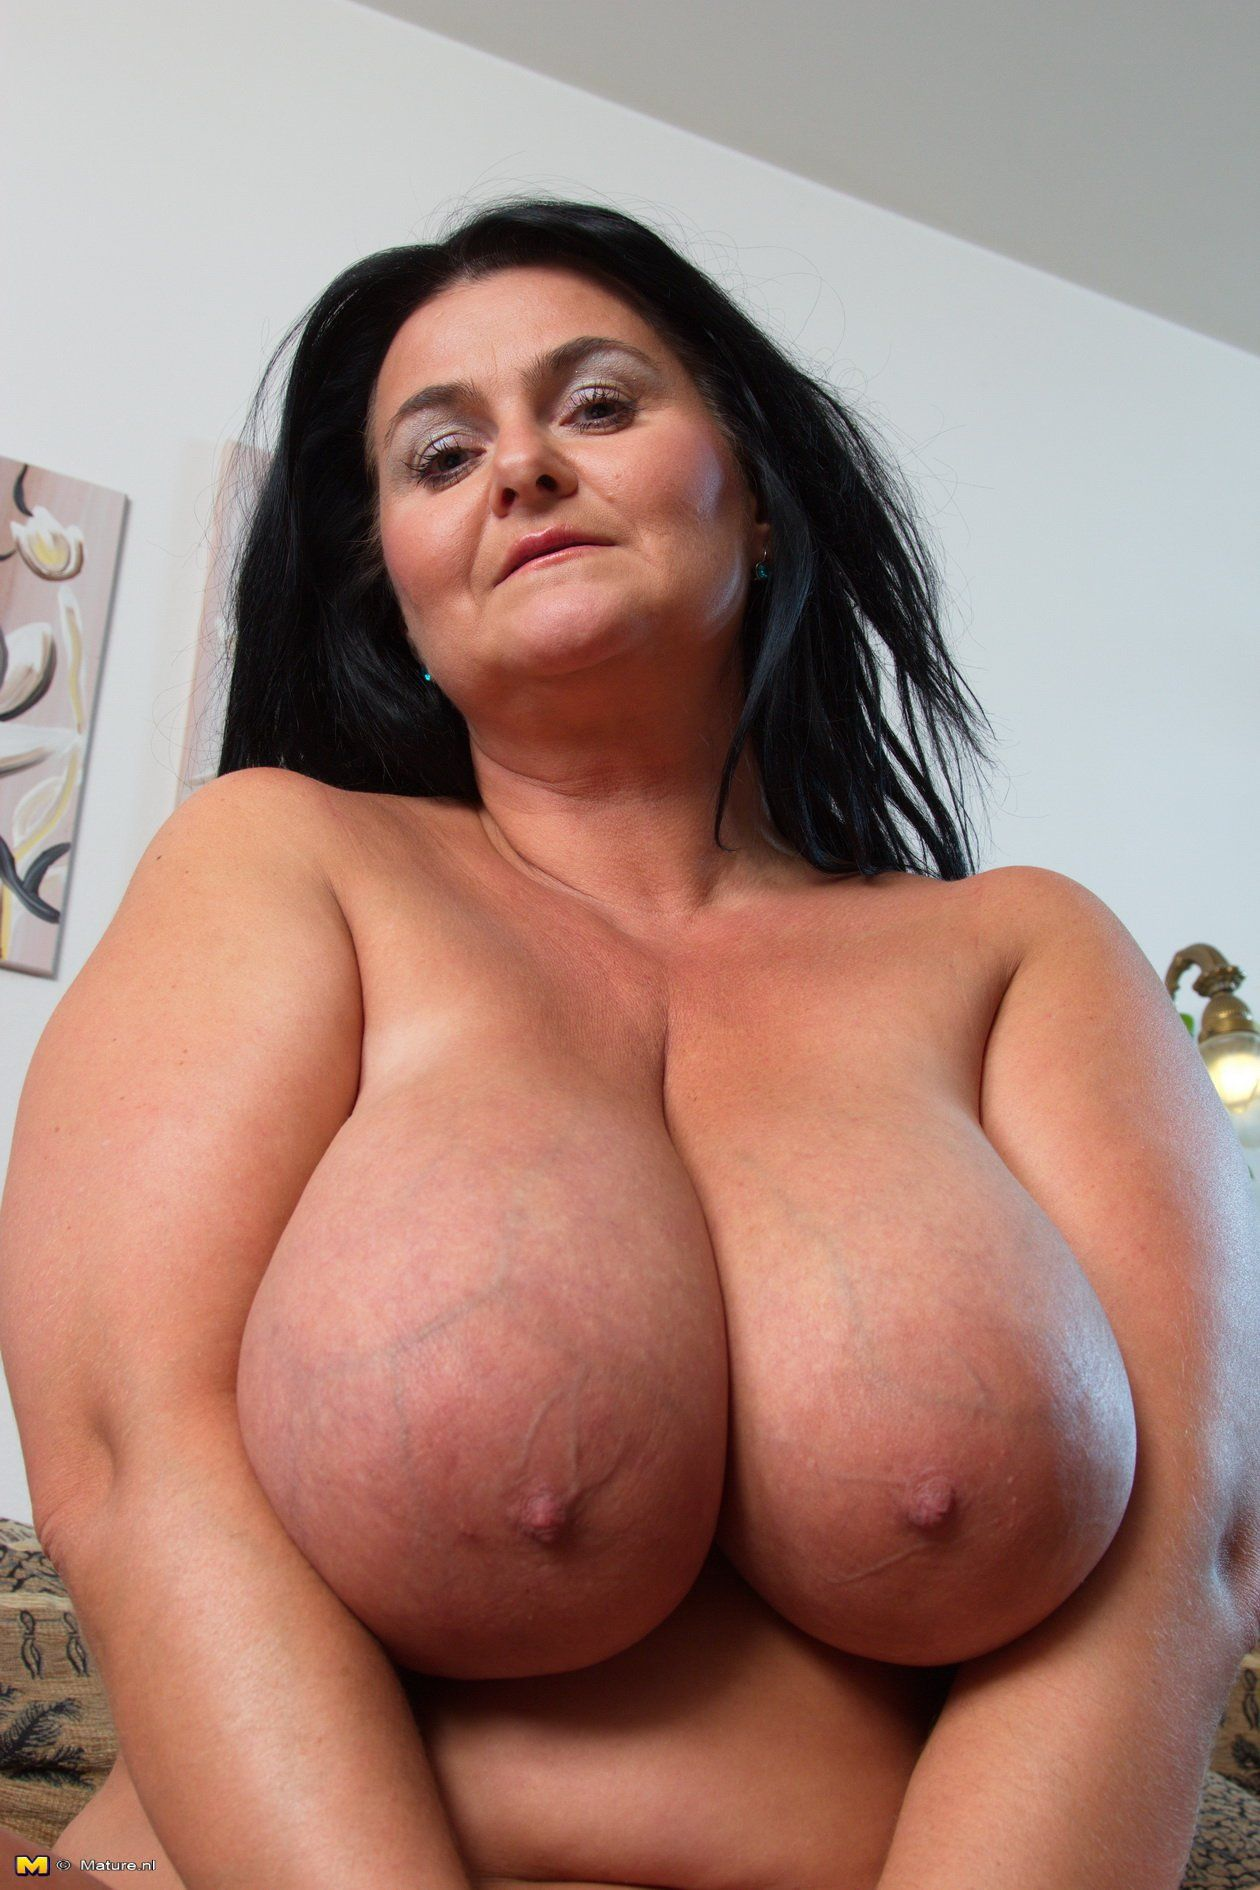 Mature natural heavy breasts